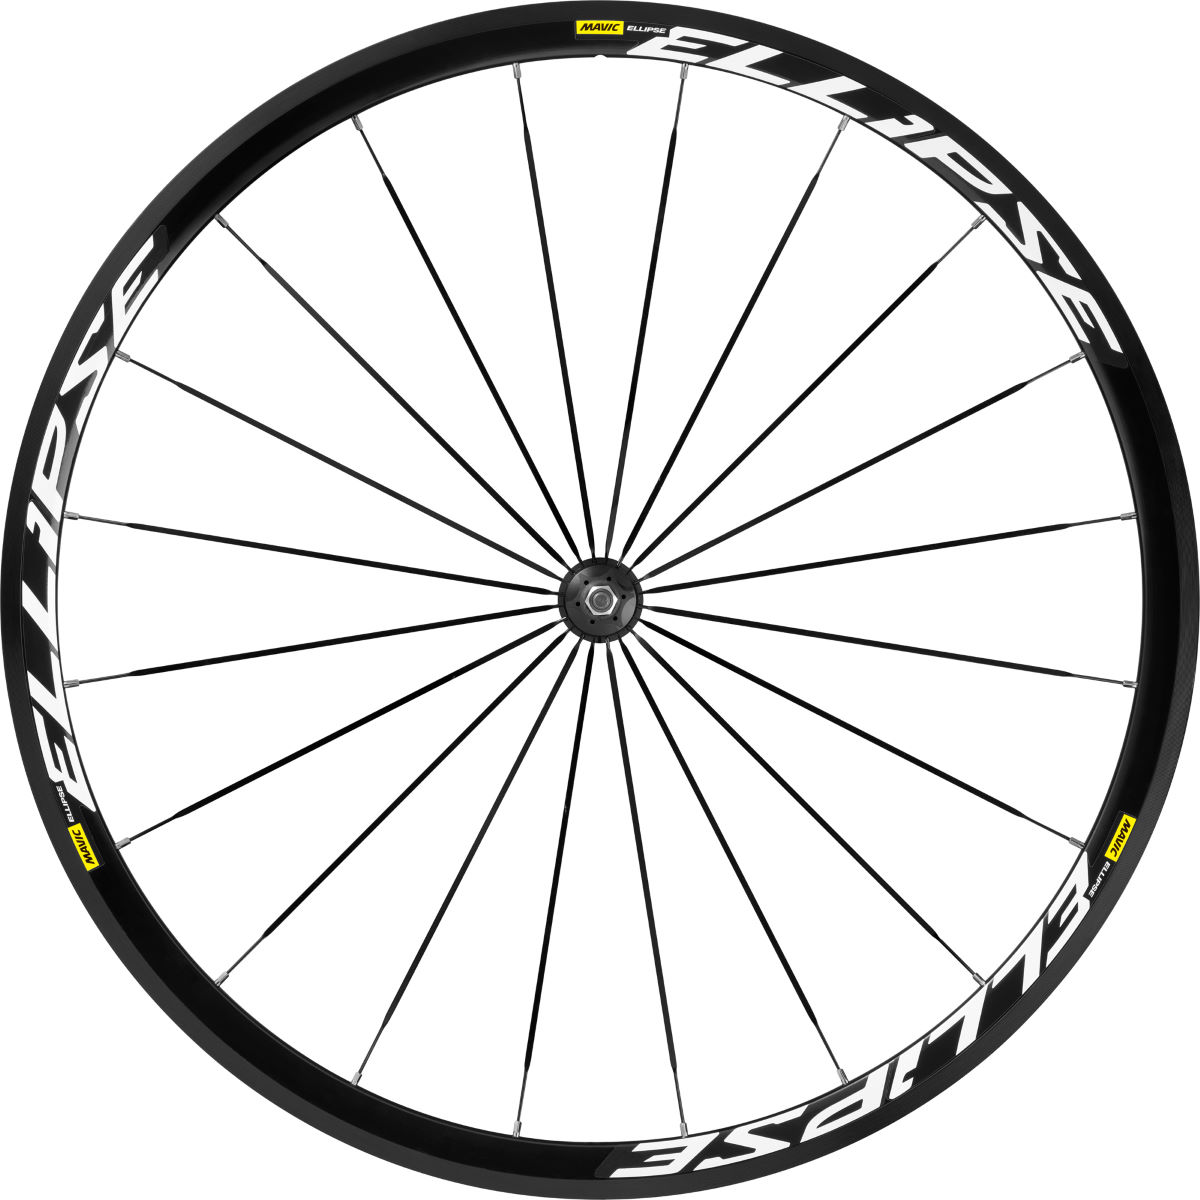 Roue avant de piste Mavic Ellipse - 700c - Track Only Noir Roues performance